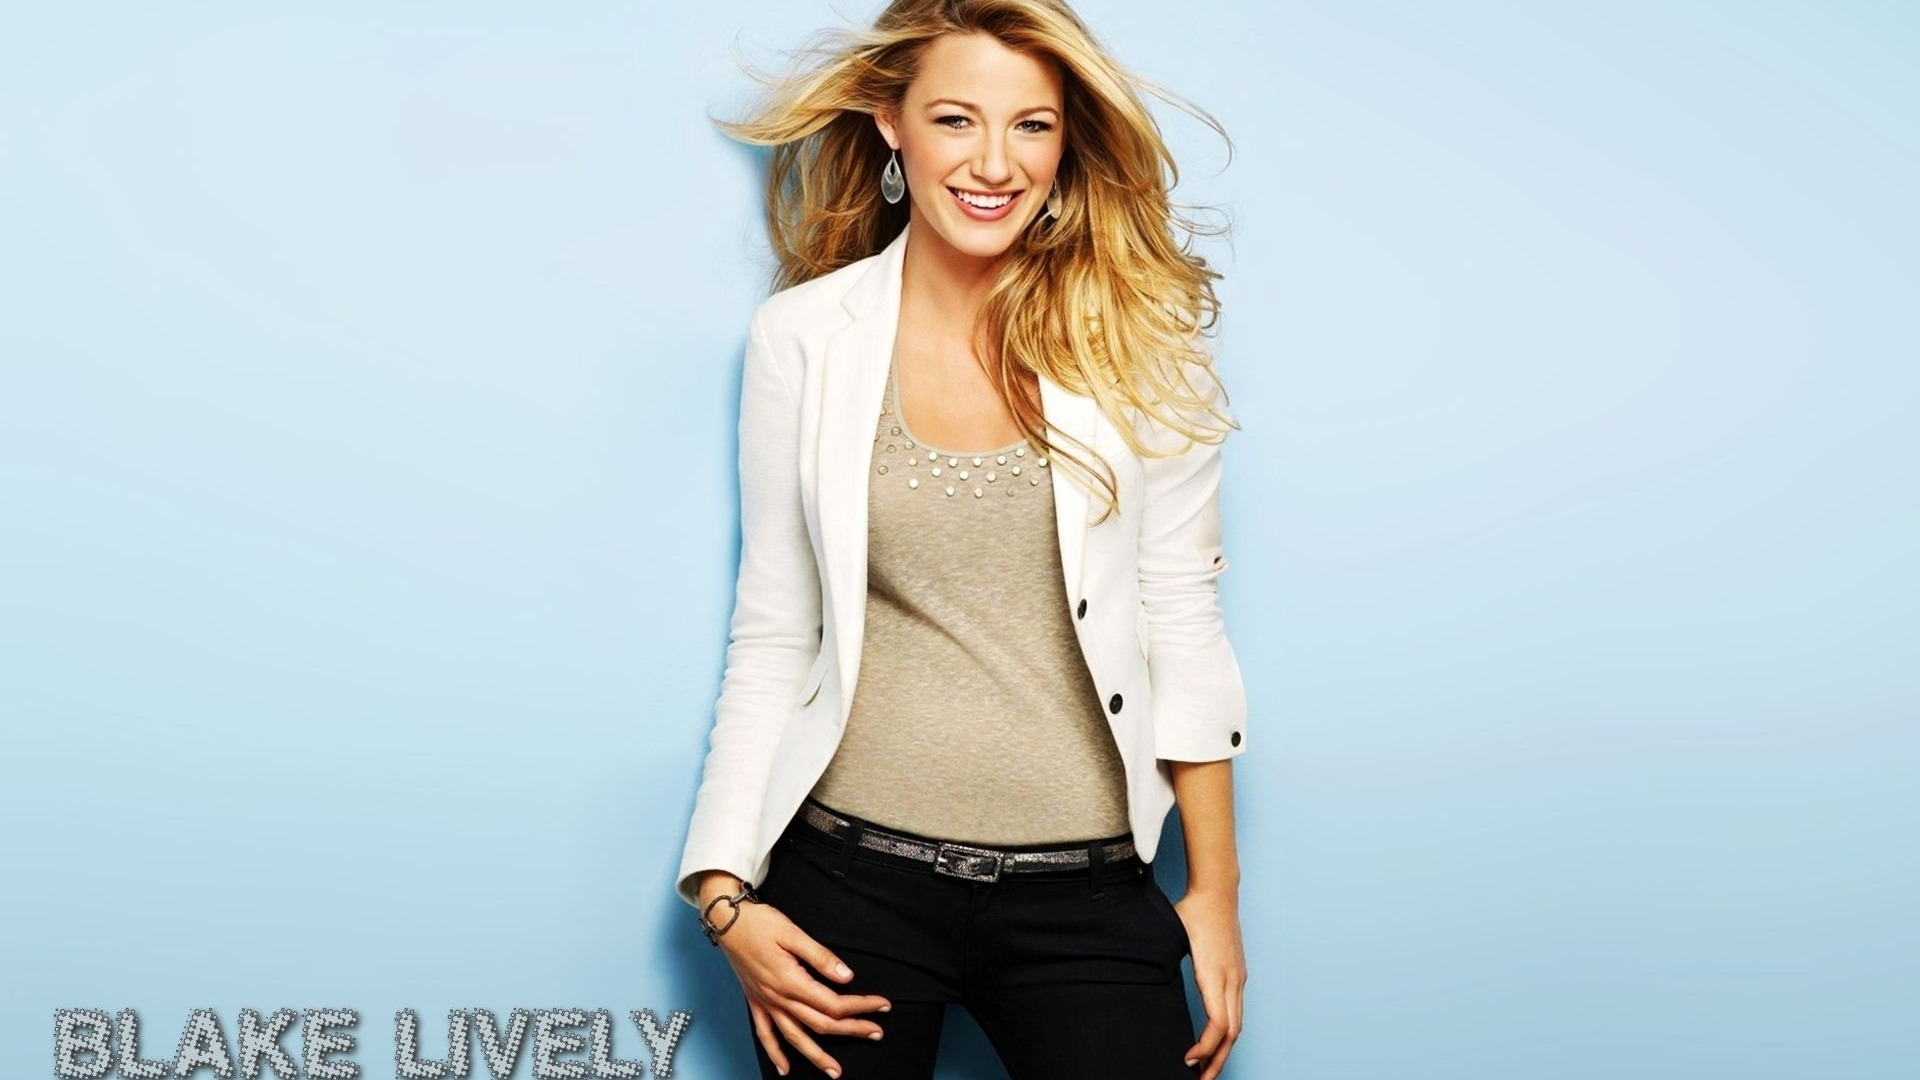 ... blake lively wallpapers wallpaper download blake lively 009 1920x1080 Blakelively